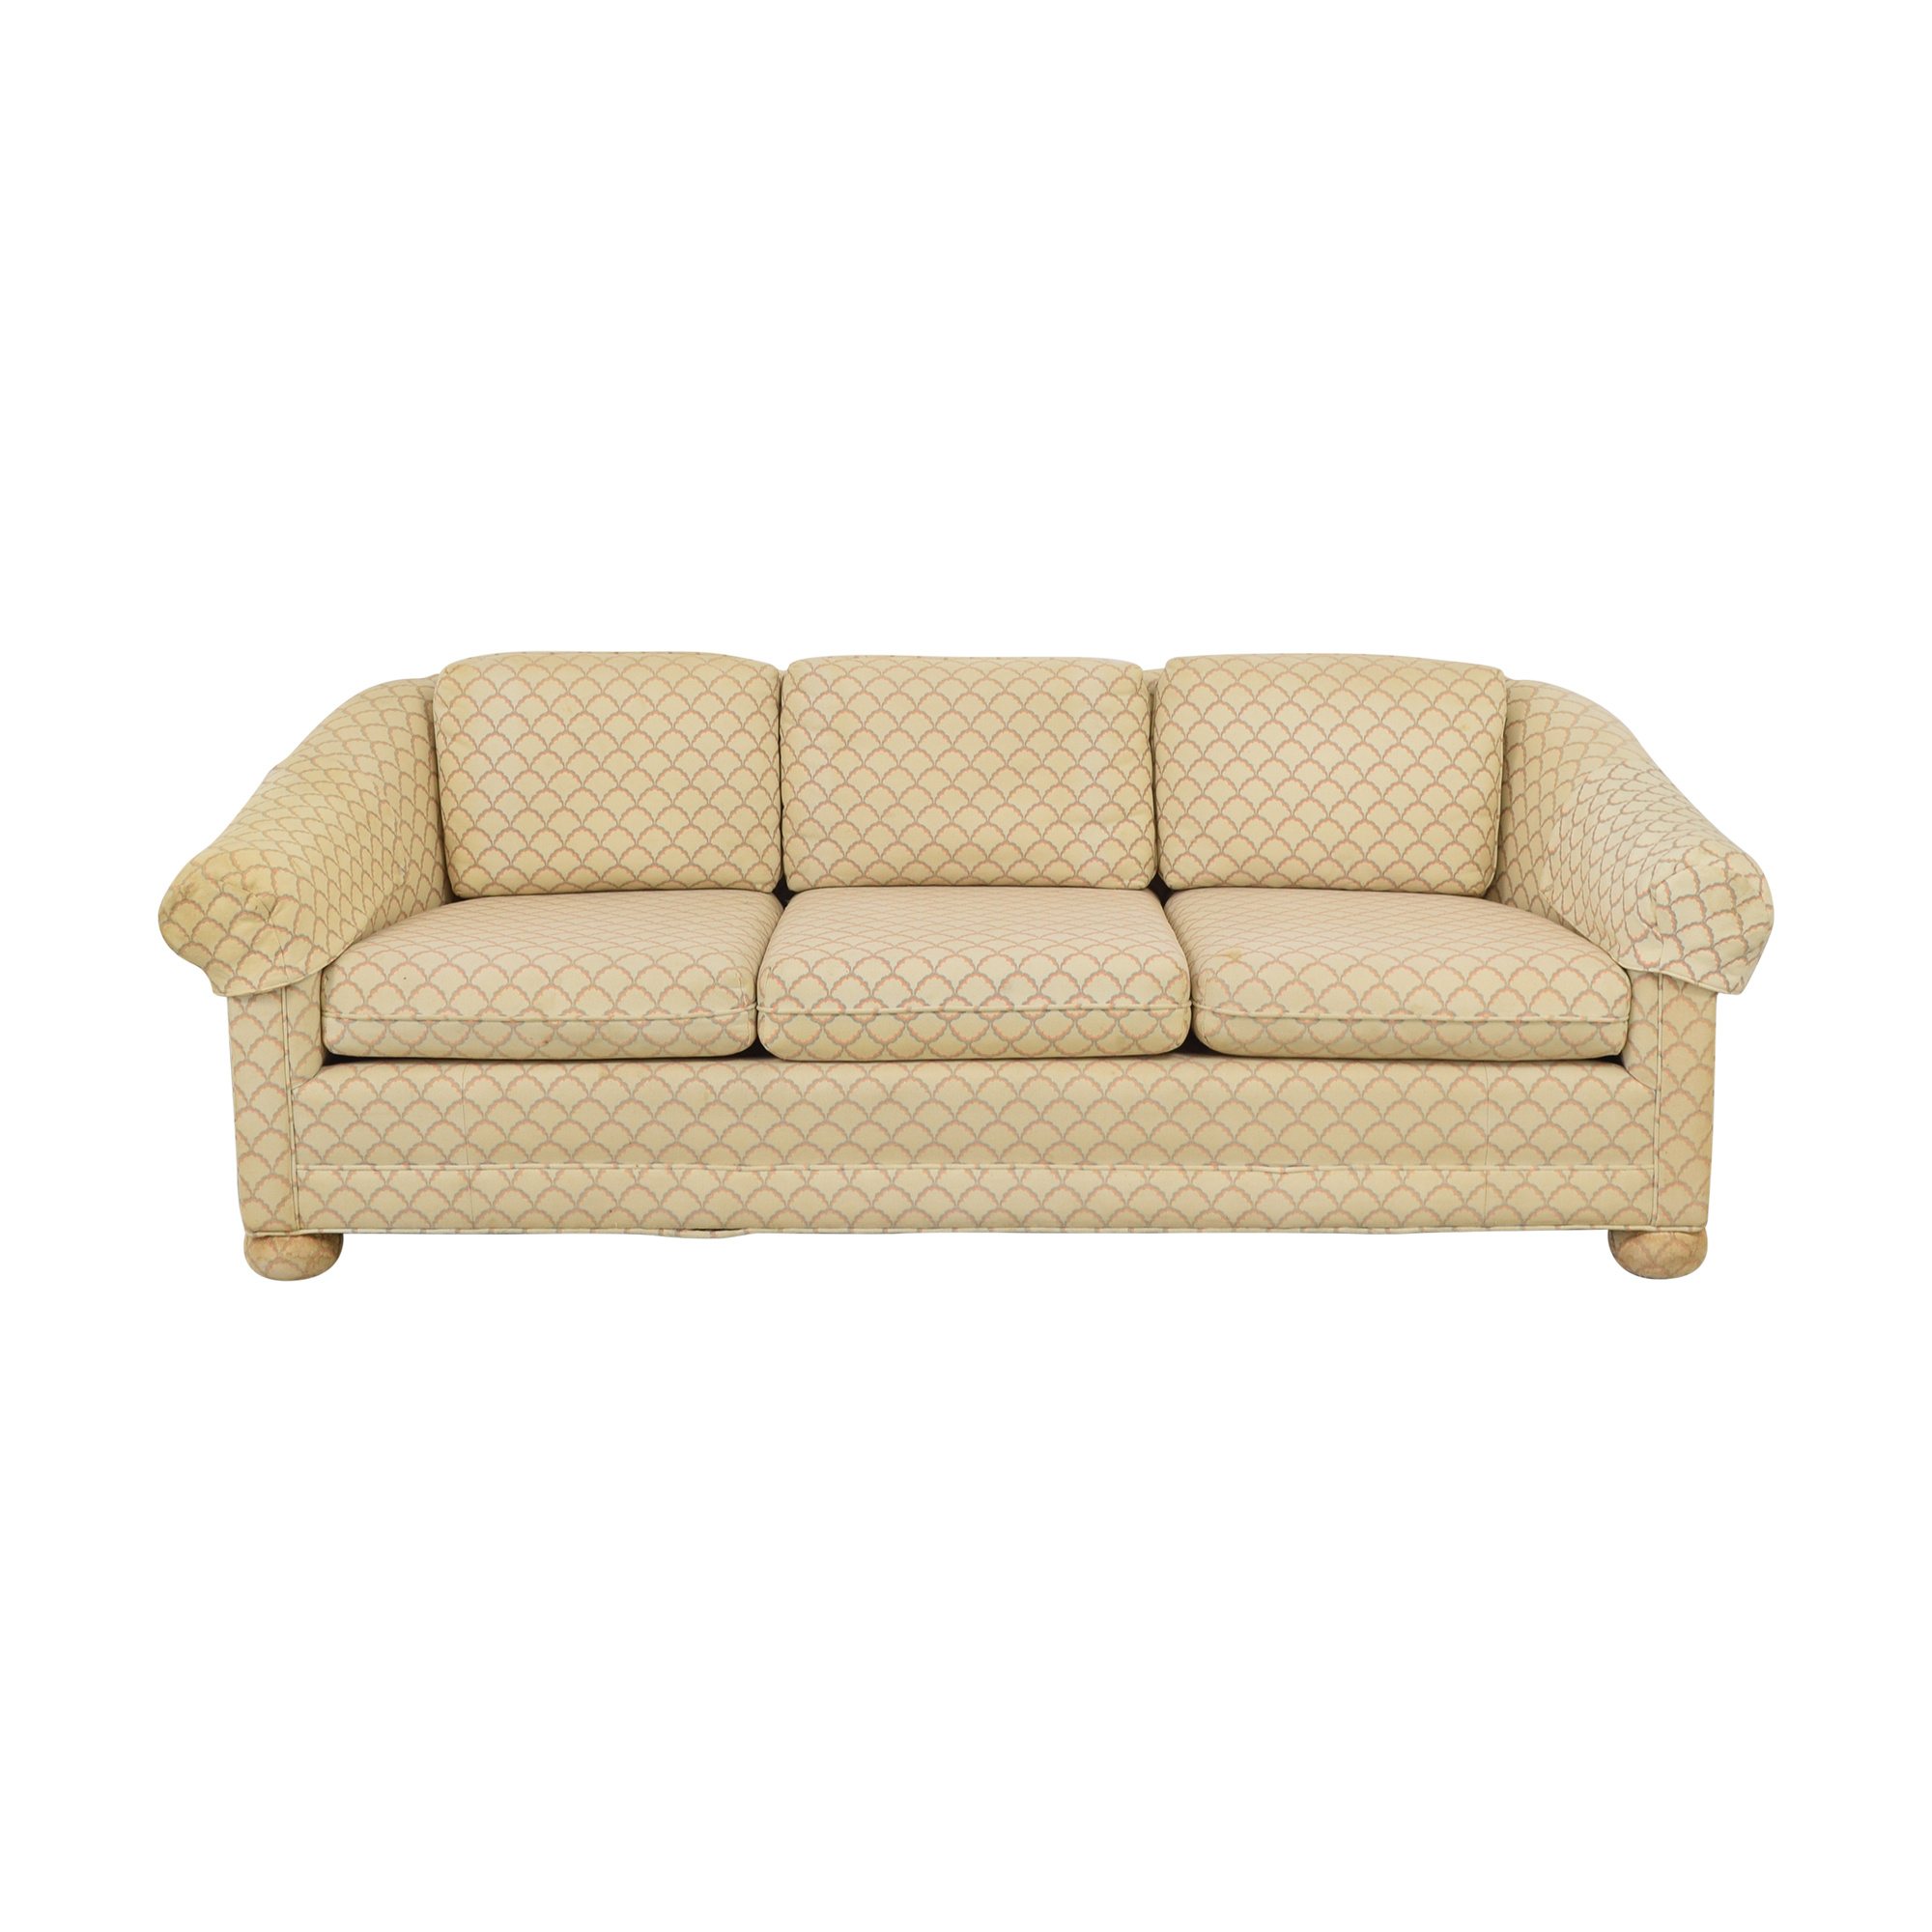 Three Seat Patterned Sofa ct